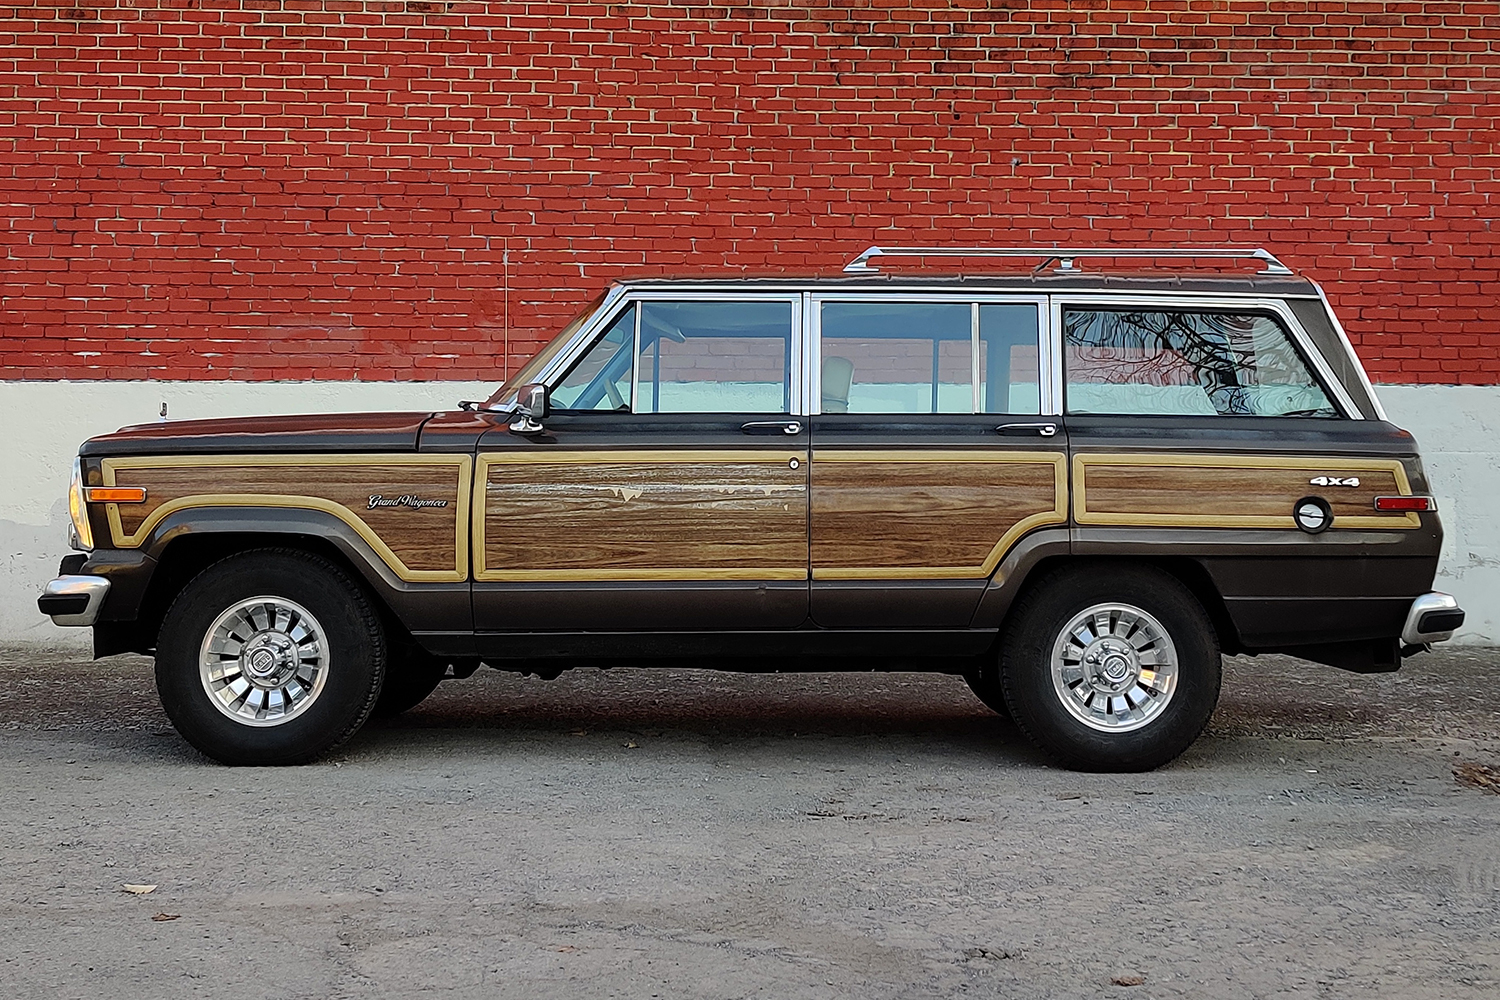 The side profile of a 1987 Jeep Grand Wagoneer against a red brick wall